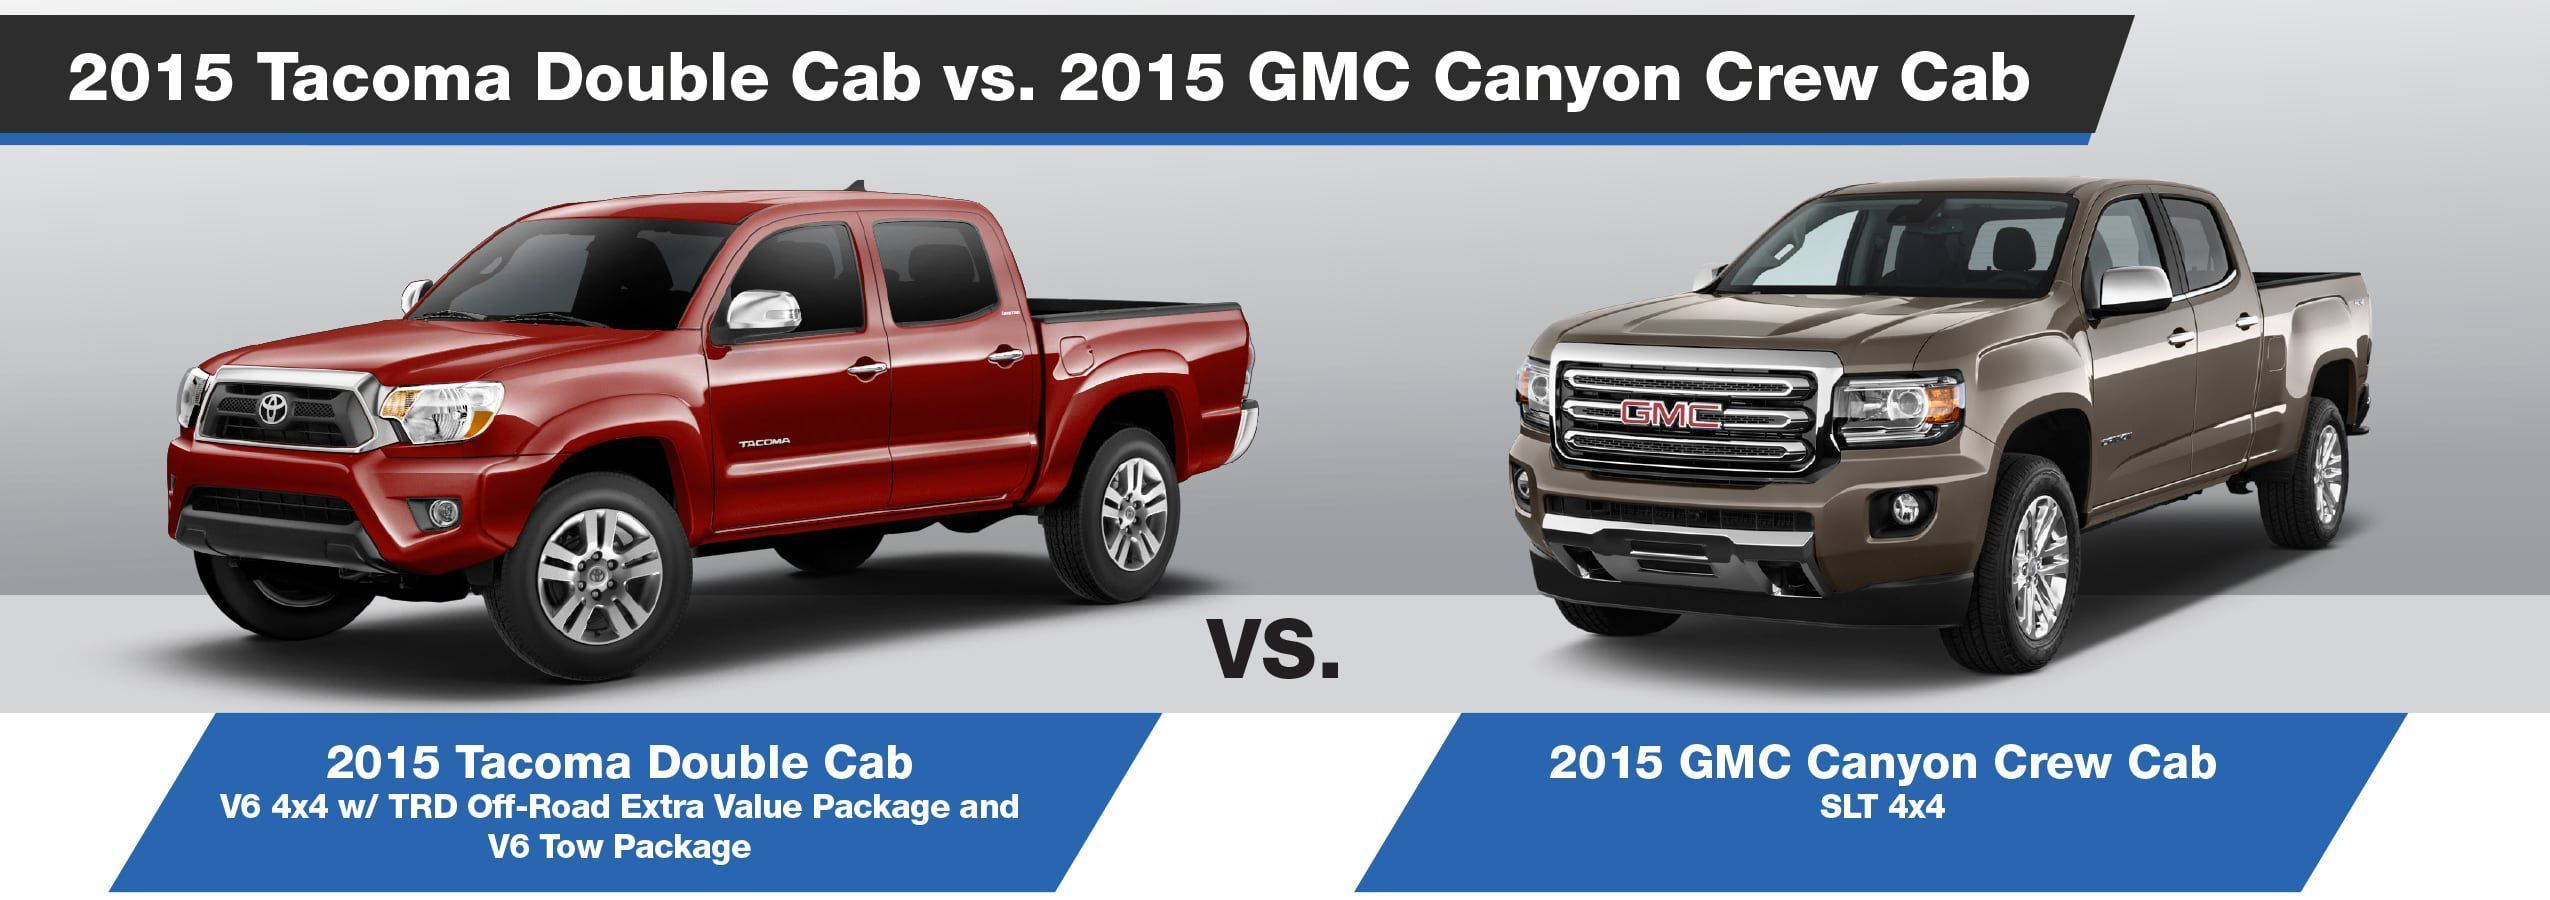 Chevy Colorado Crew Cab Vs Extended Cab In 2020 Chevy Colorado